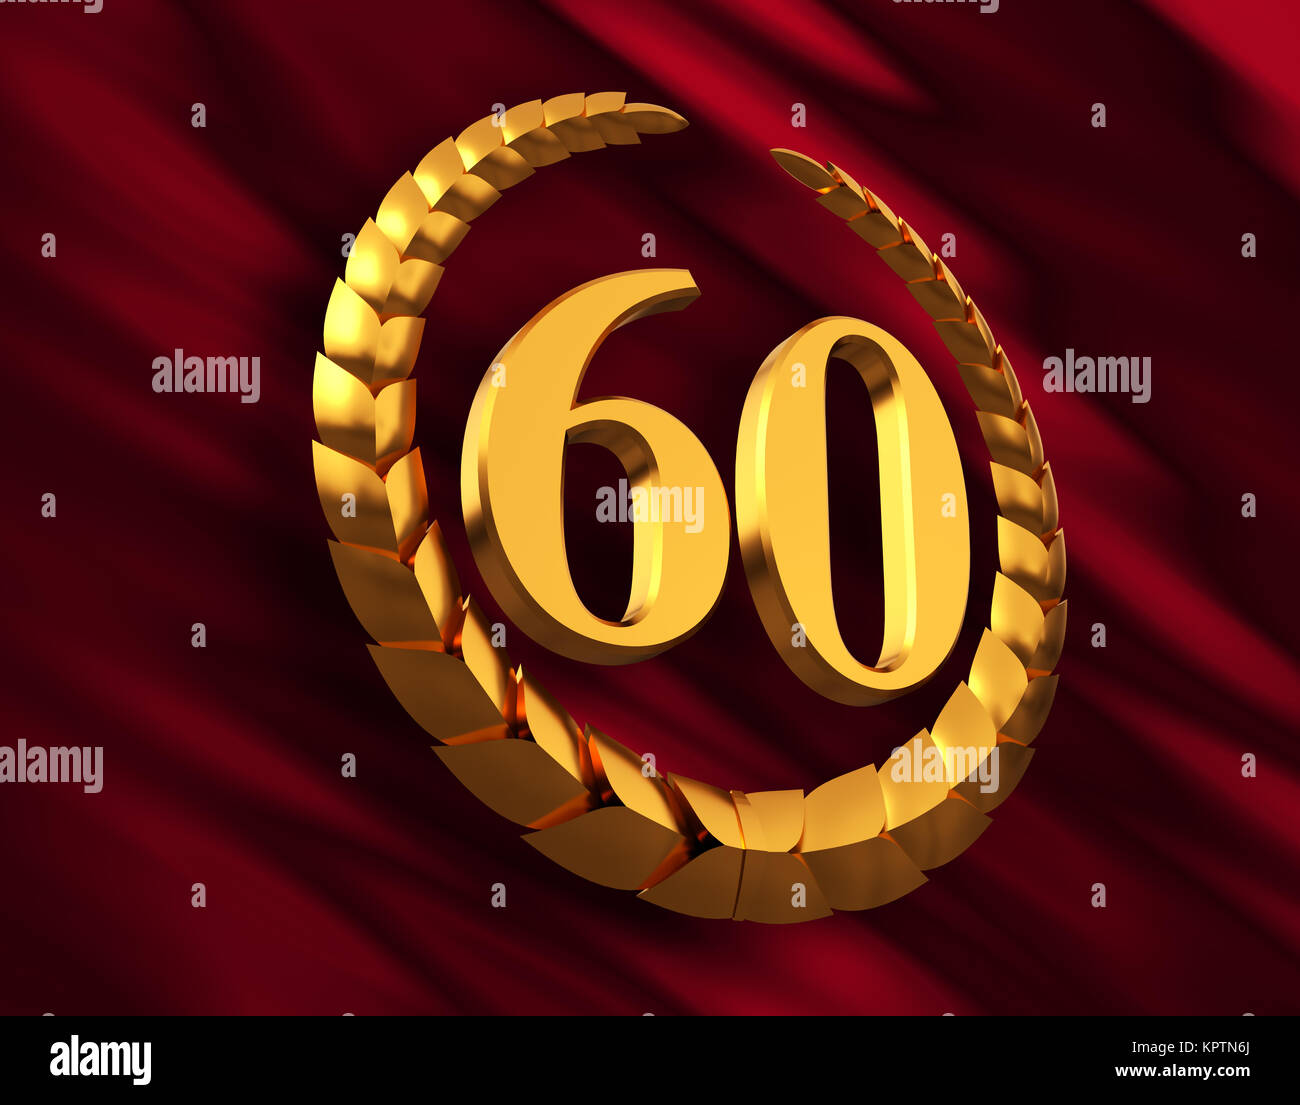 Anniversary Golden Laurel Wreath And Numeral 60 On Red Flag - Stock Image